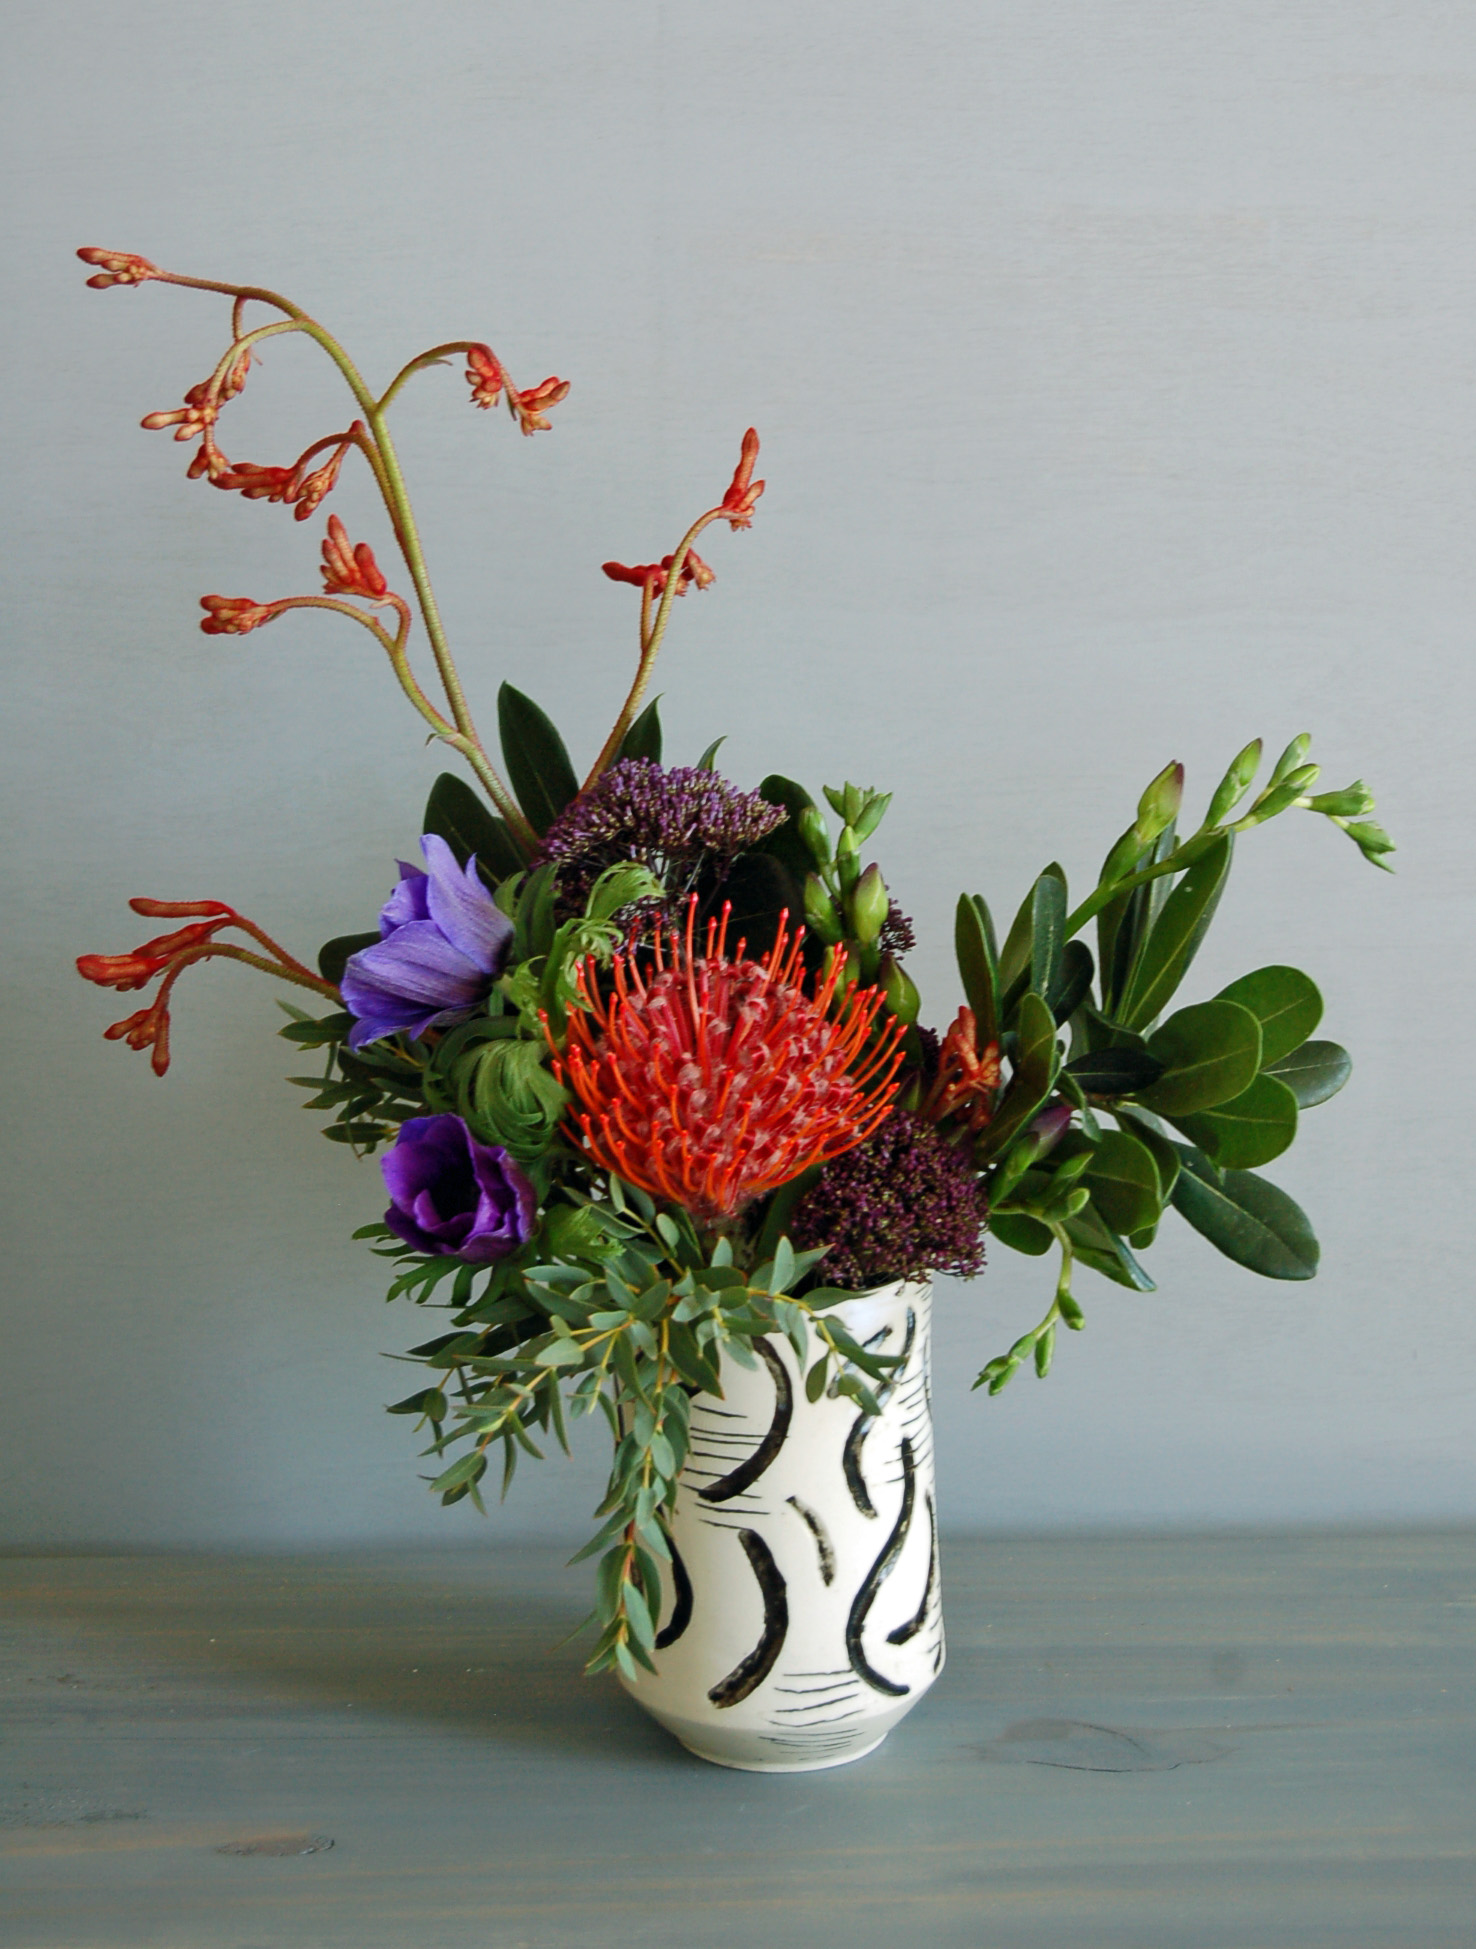 Pottery and flowers by Seattle's Bond in Bloom.jpg